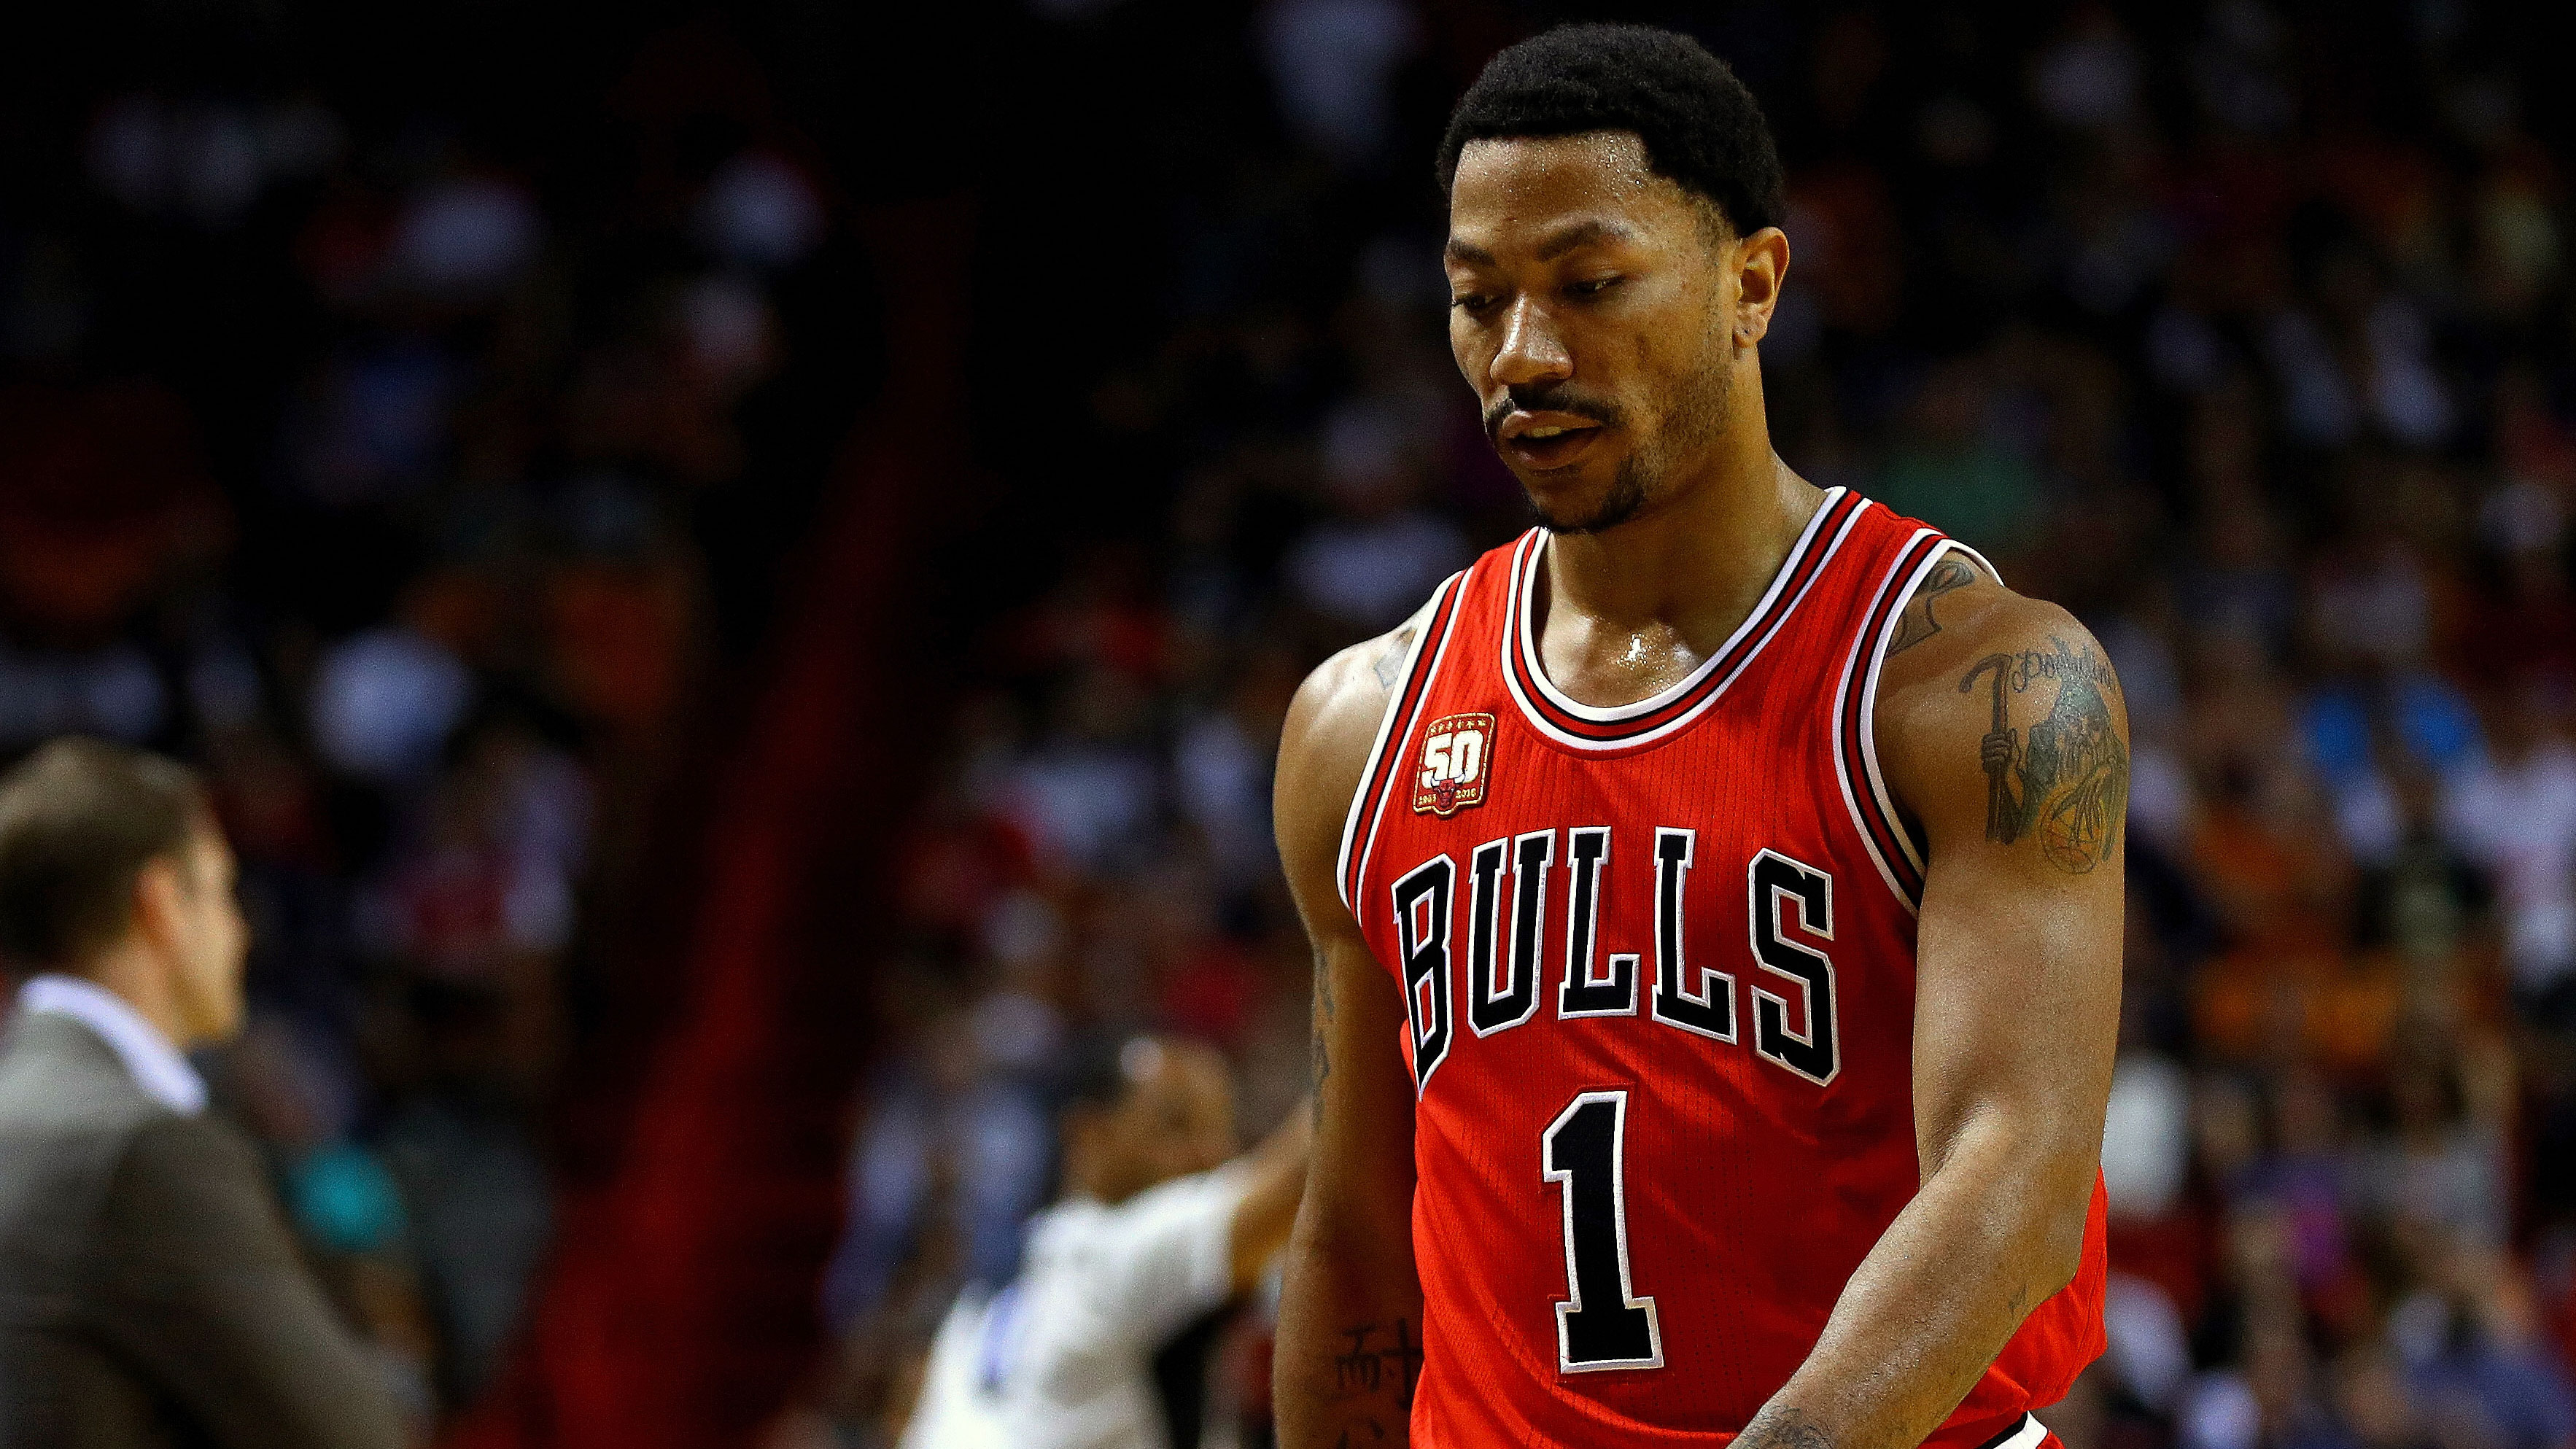 Derrick Rose trade timeline: from Bulls to Knicks | SI.com